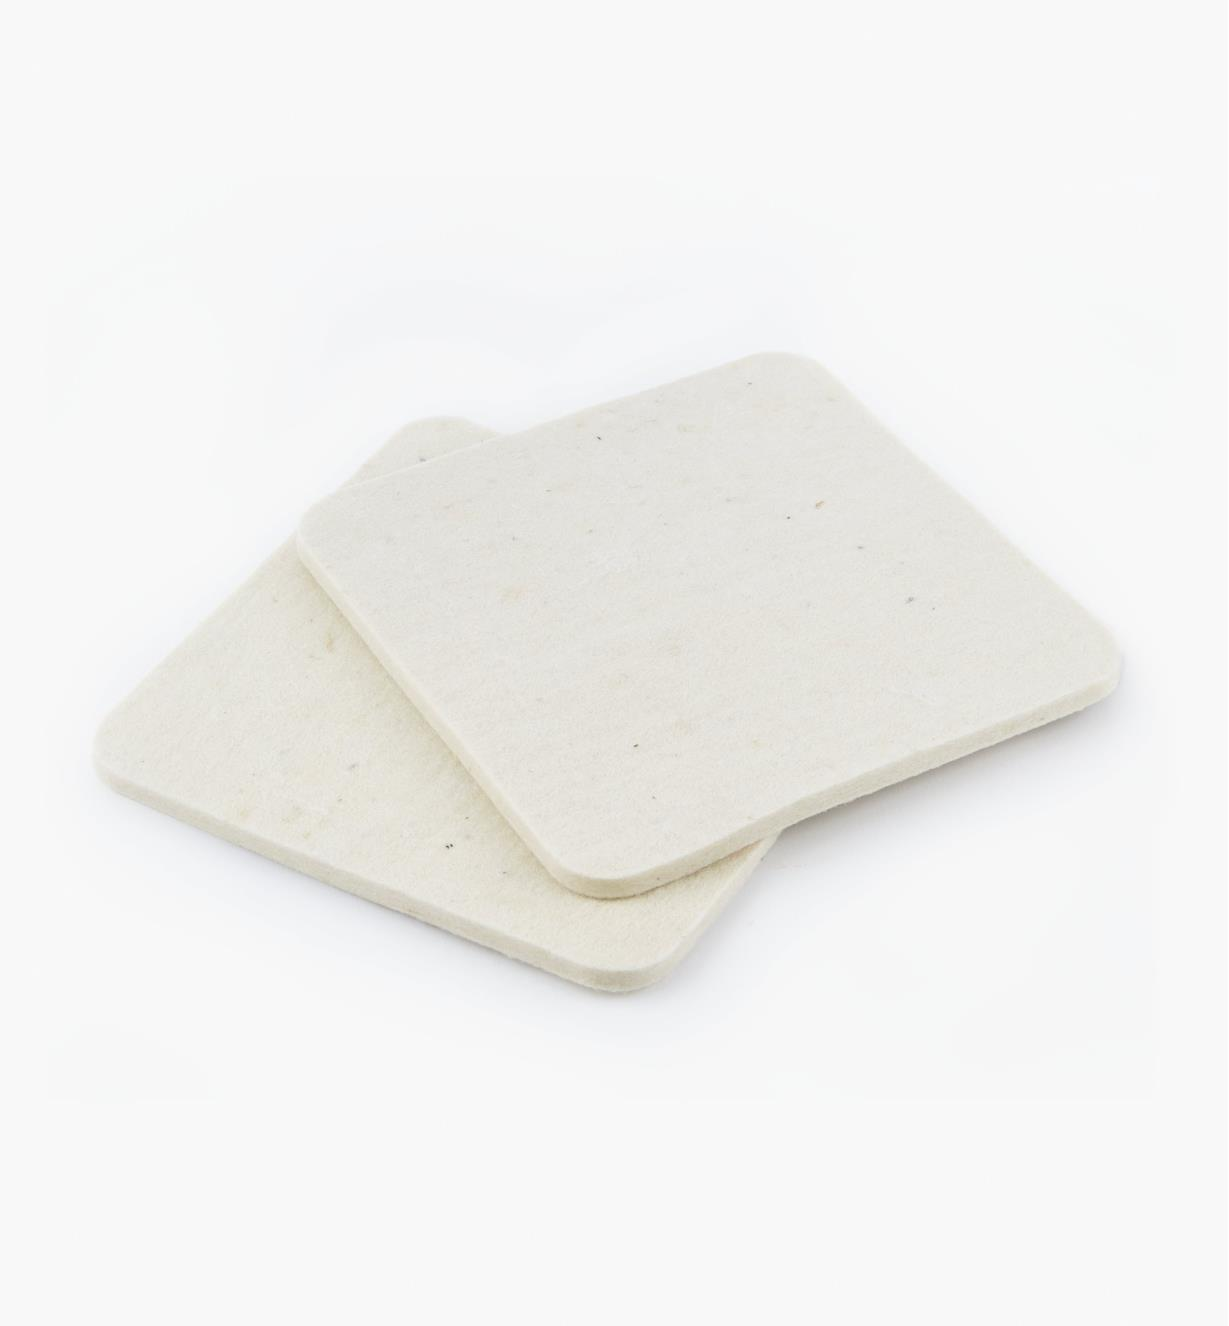 GM423 - Reg. Repl. Wool Pads, pkg. of 2